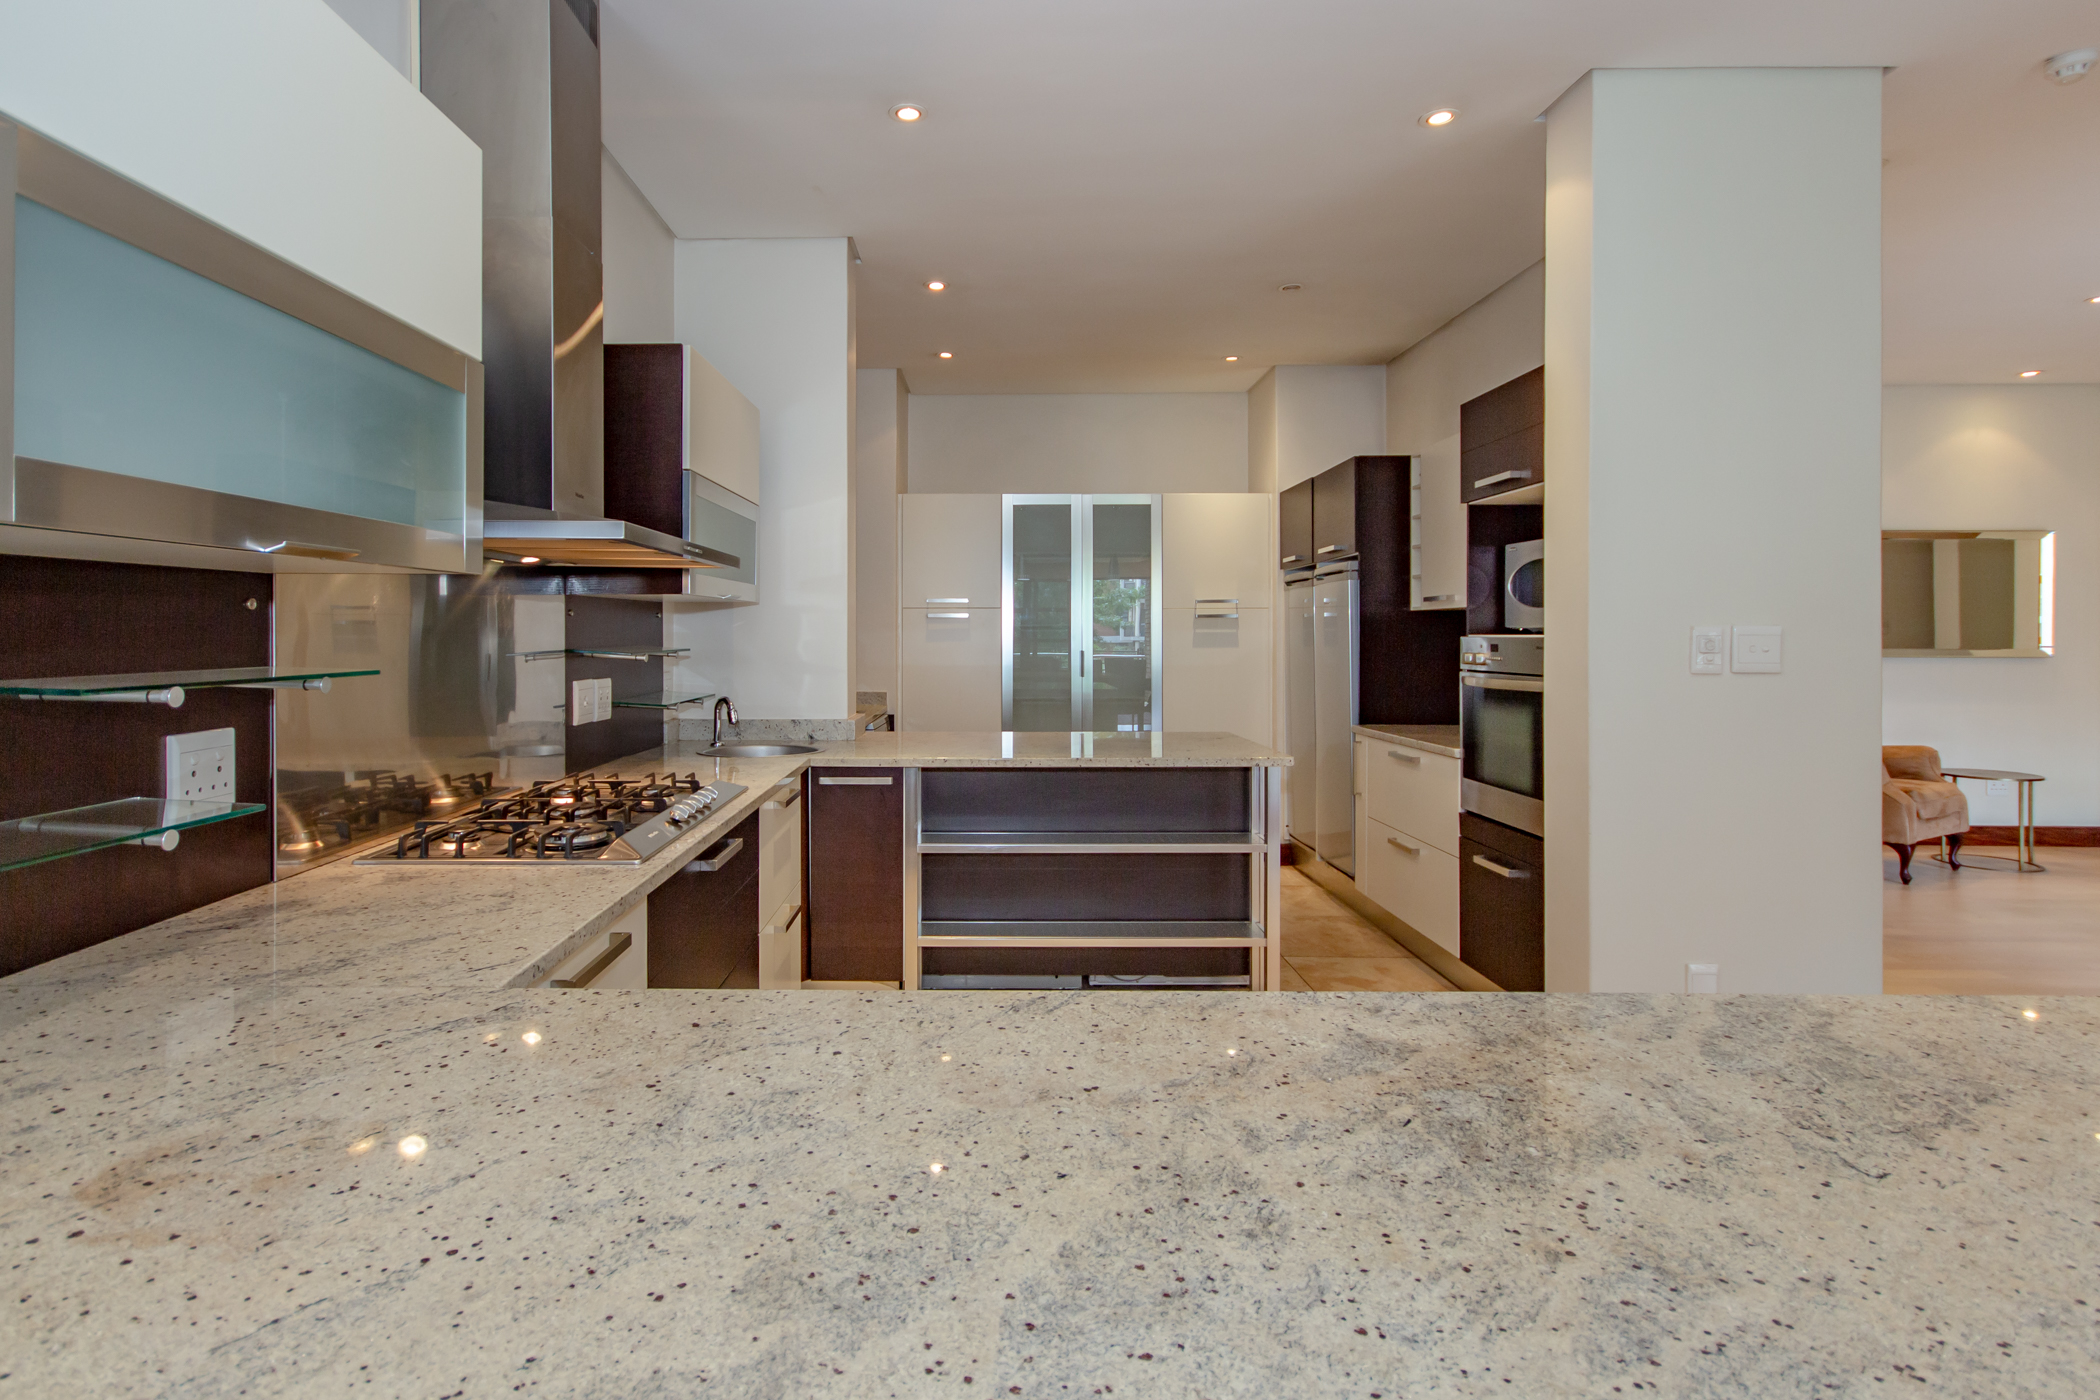 """""""Melrose arch luxury apartment neat modern kitchen """" """"Flats for rent in Johannesburg"""""""